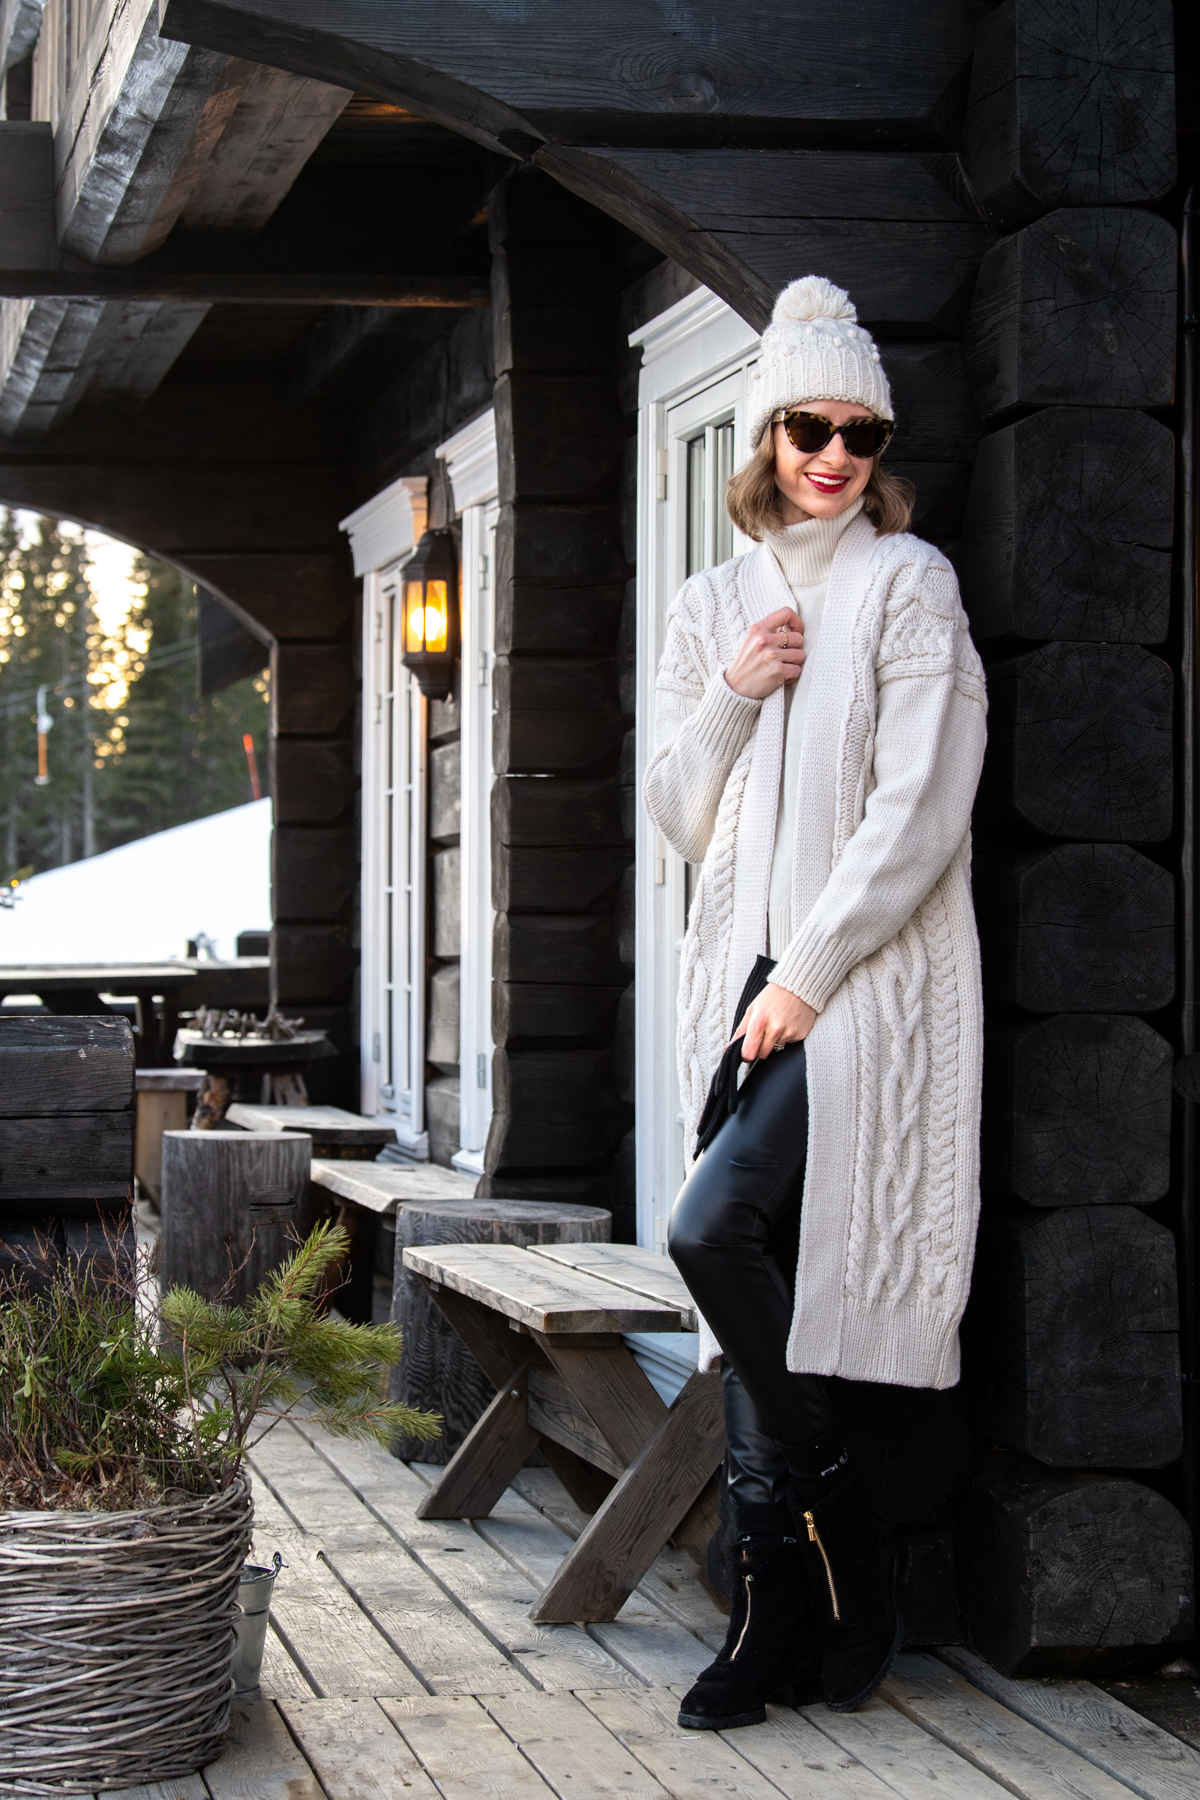 Stacie Flinner x Norway Ski Trip-21.jpg